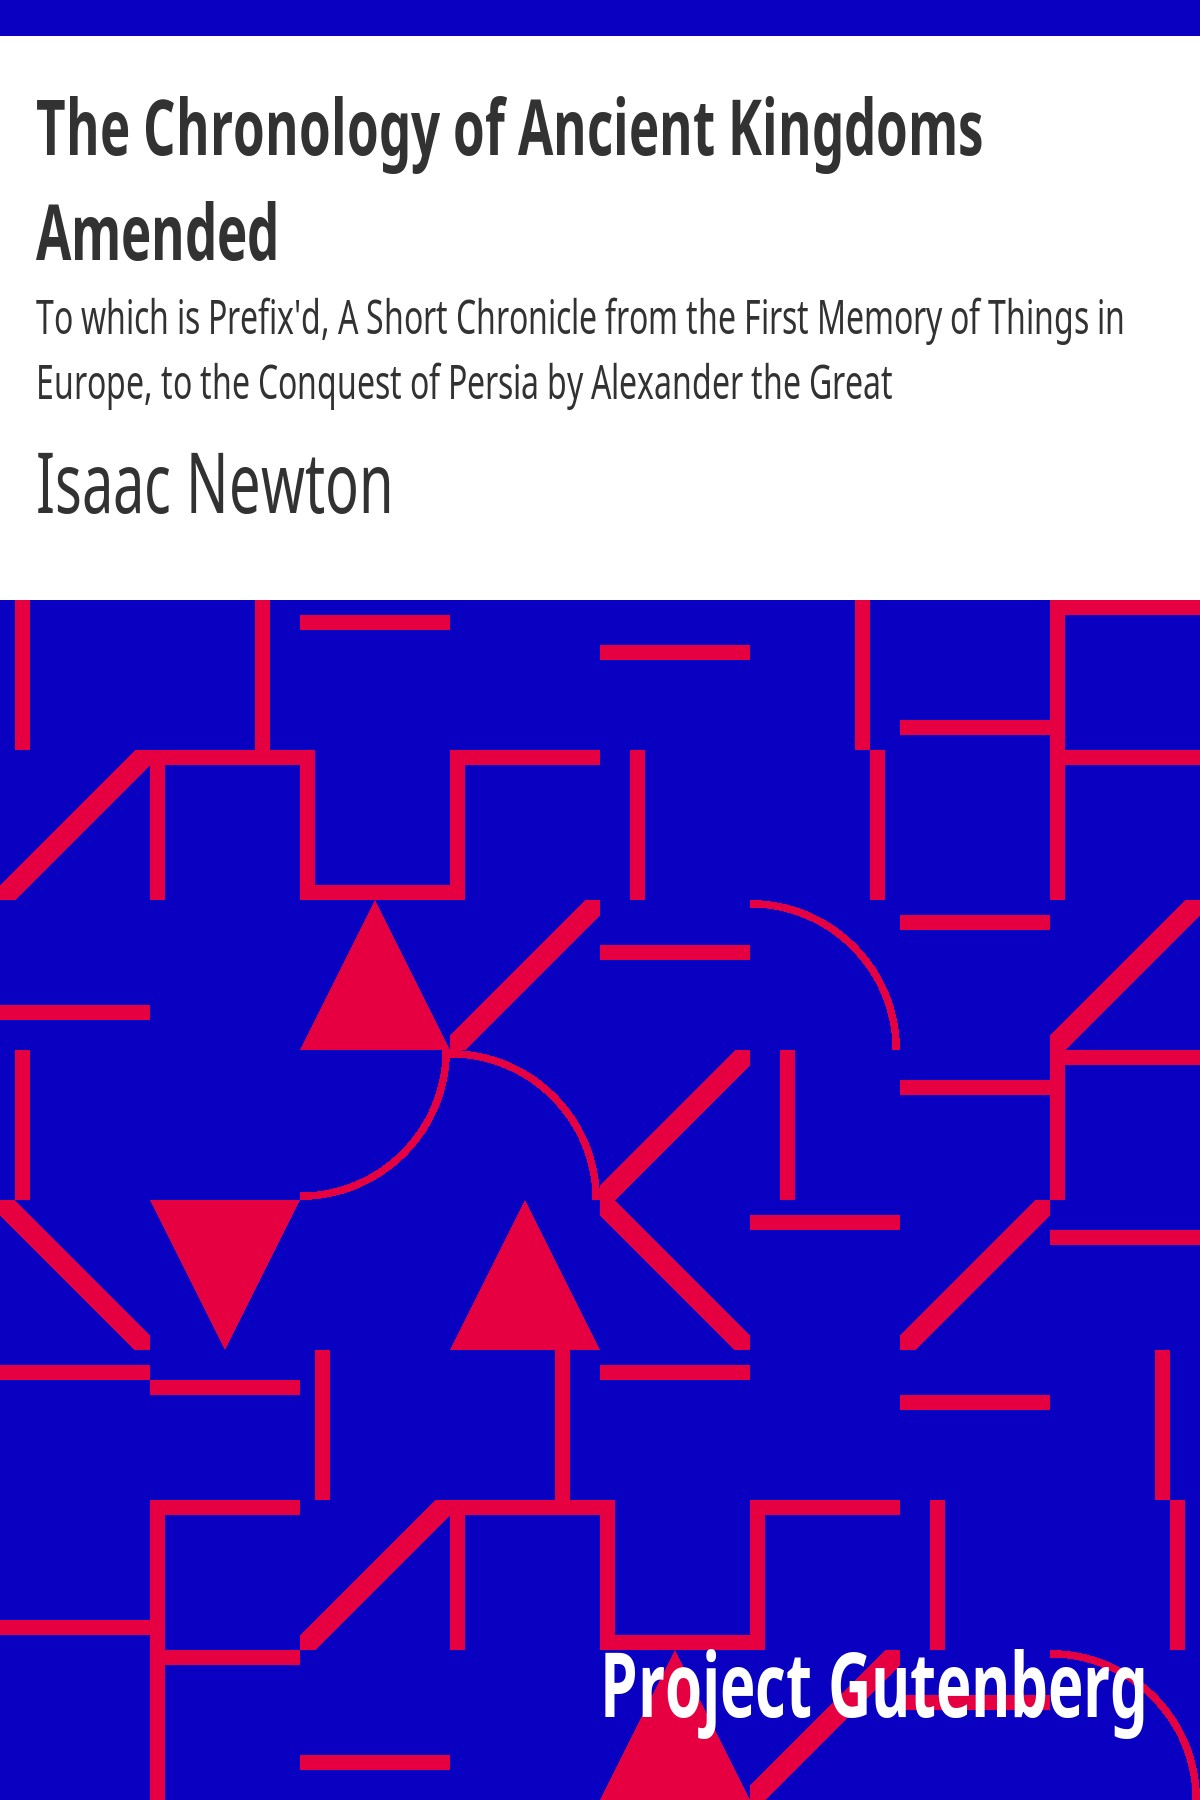 Isaac Newton The Chronology of Ancient Kingdoms Amended To which is Prefix'd, A Short Chronicle from the First Memory of Things in Europe, to the Conquest of Persia by Alexander the Great